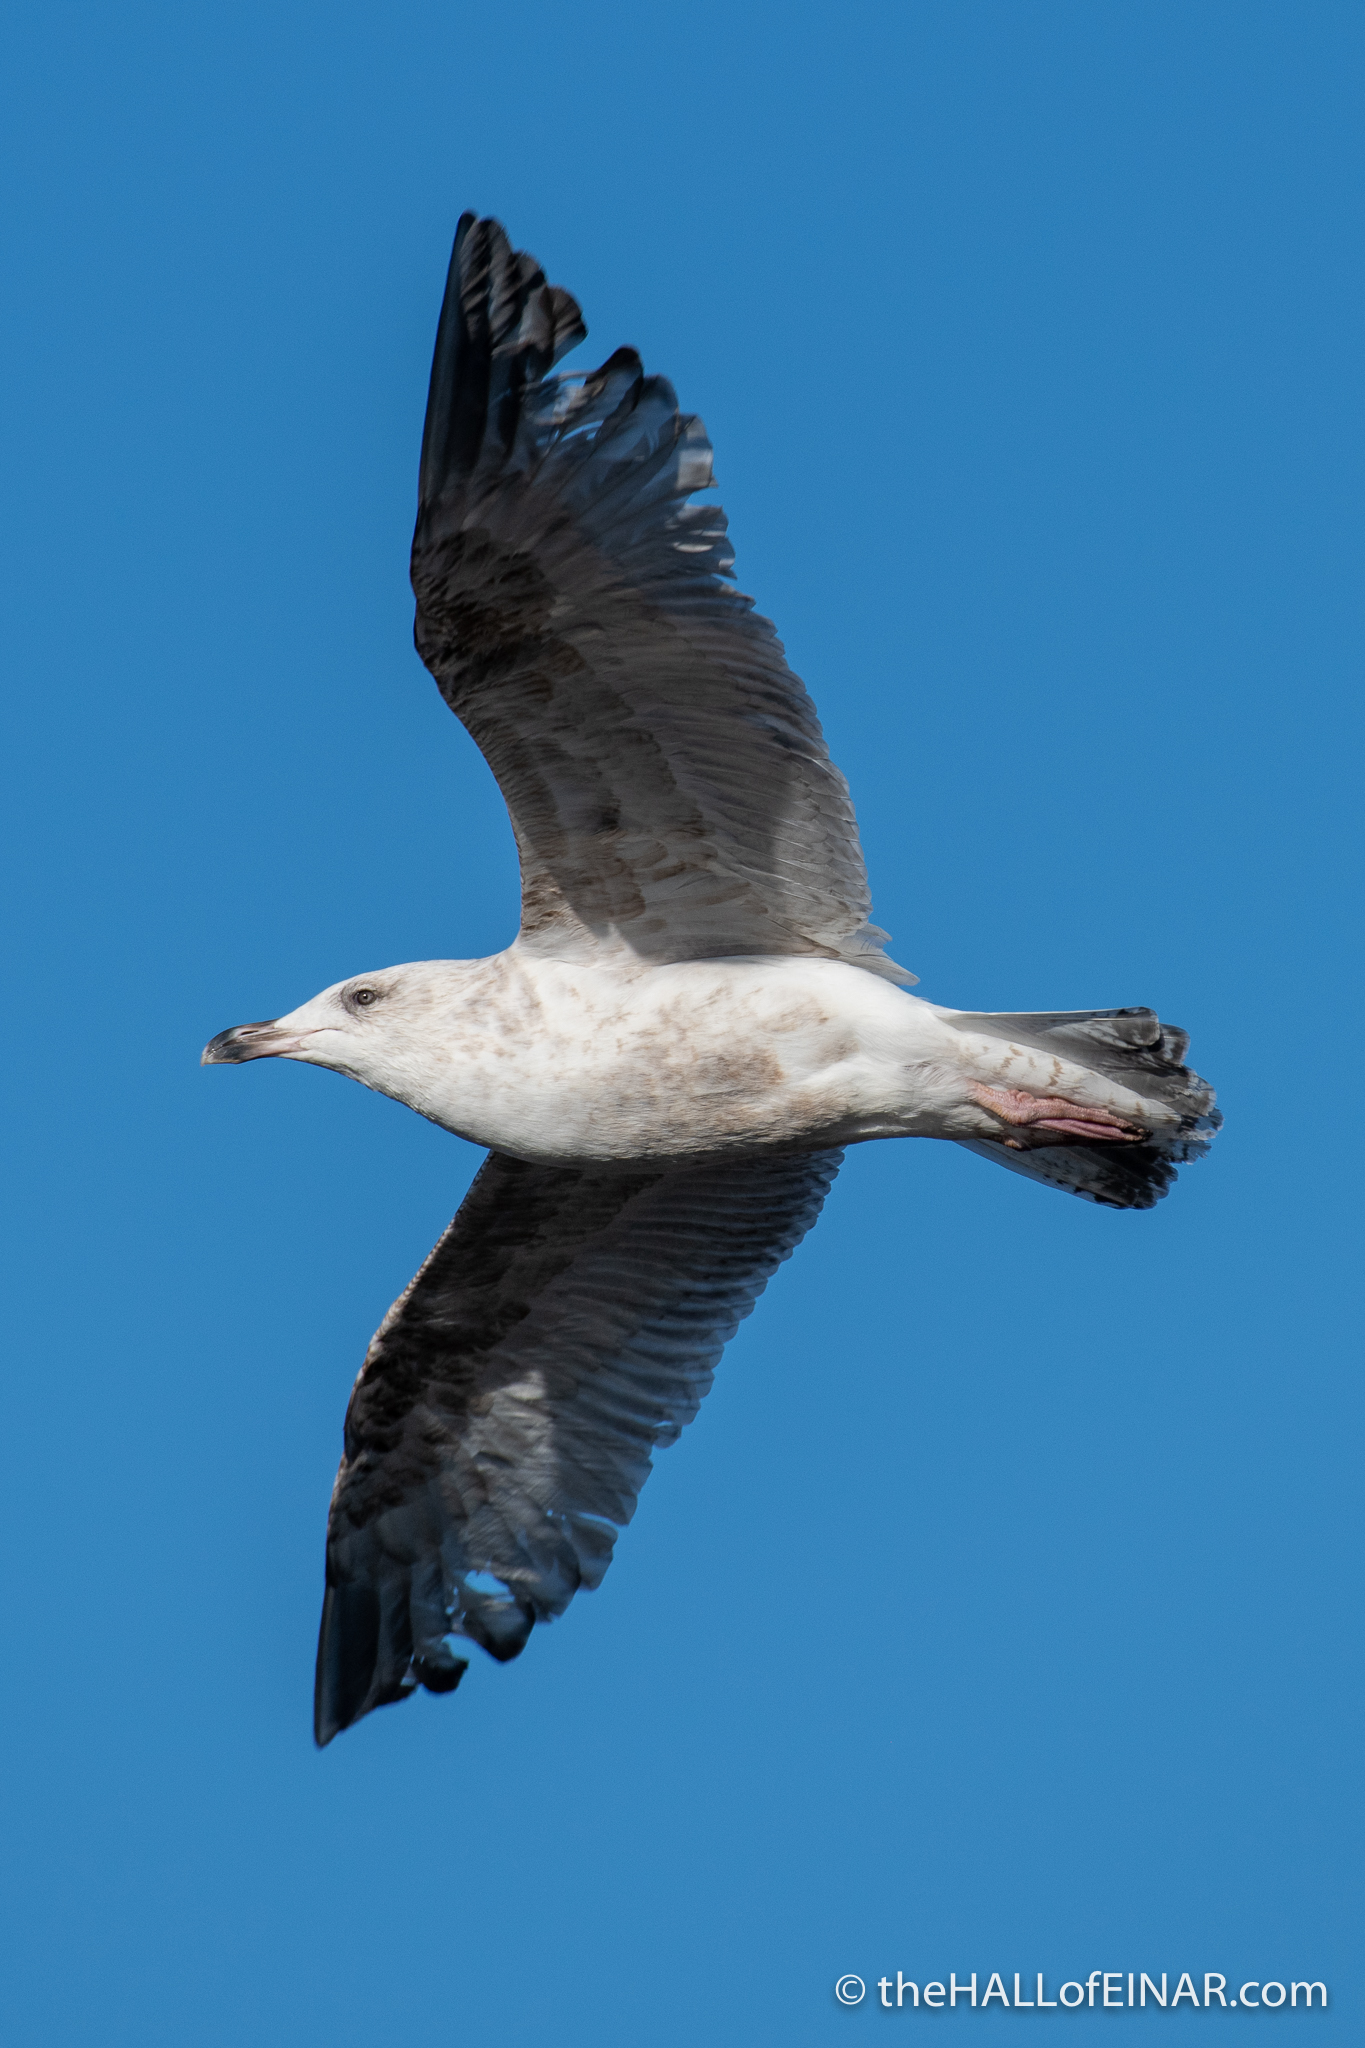 Herring Gull - Lodmoor - The Hall of Einar - photograph (c) David Bailey (not the)